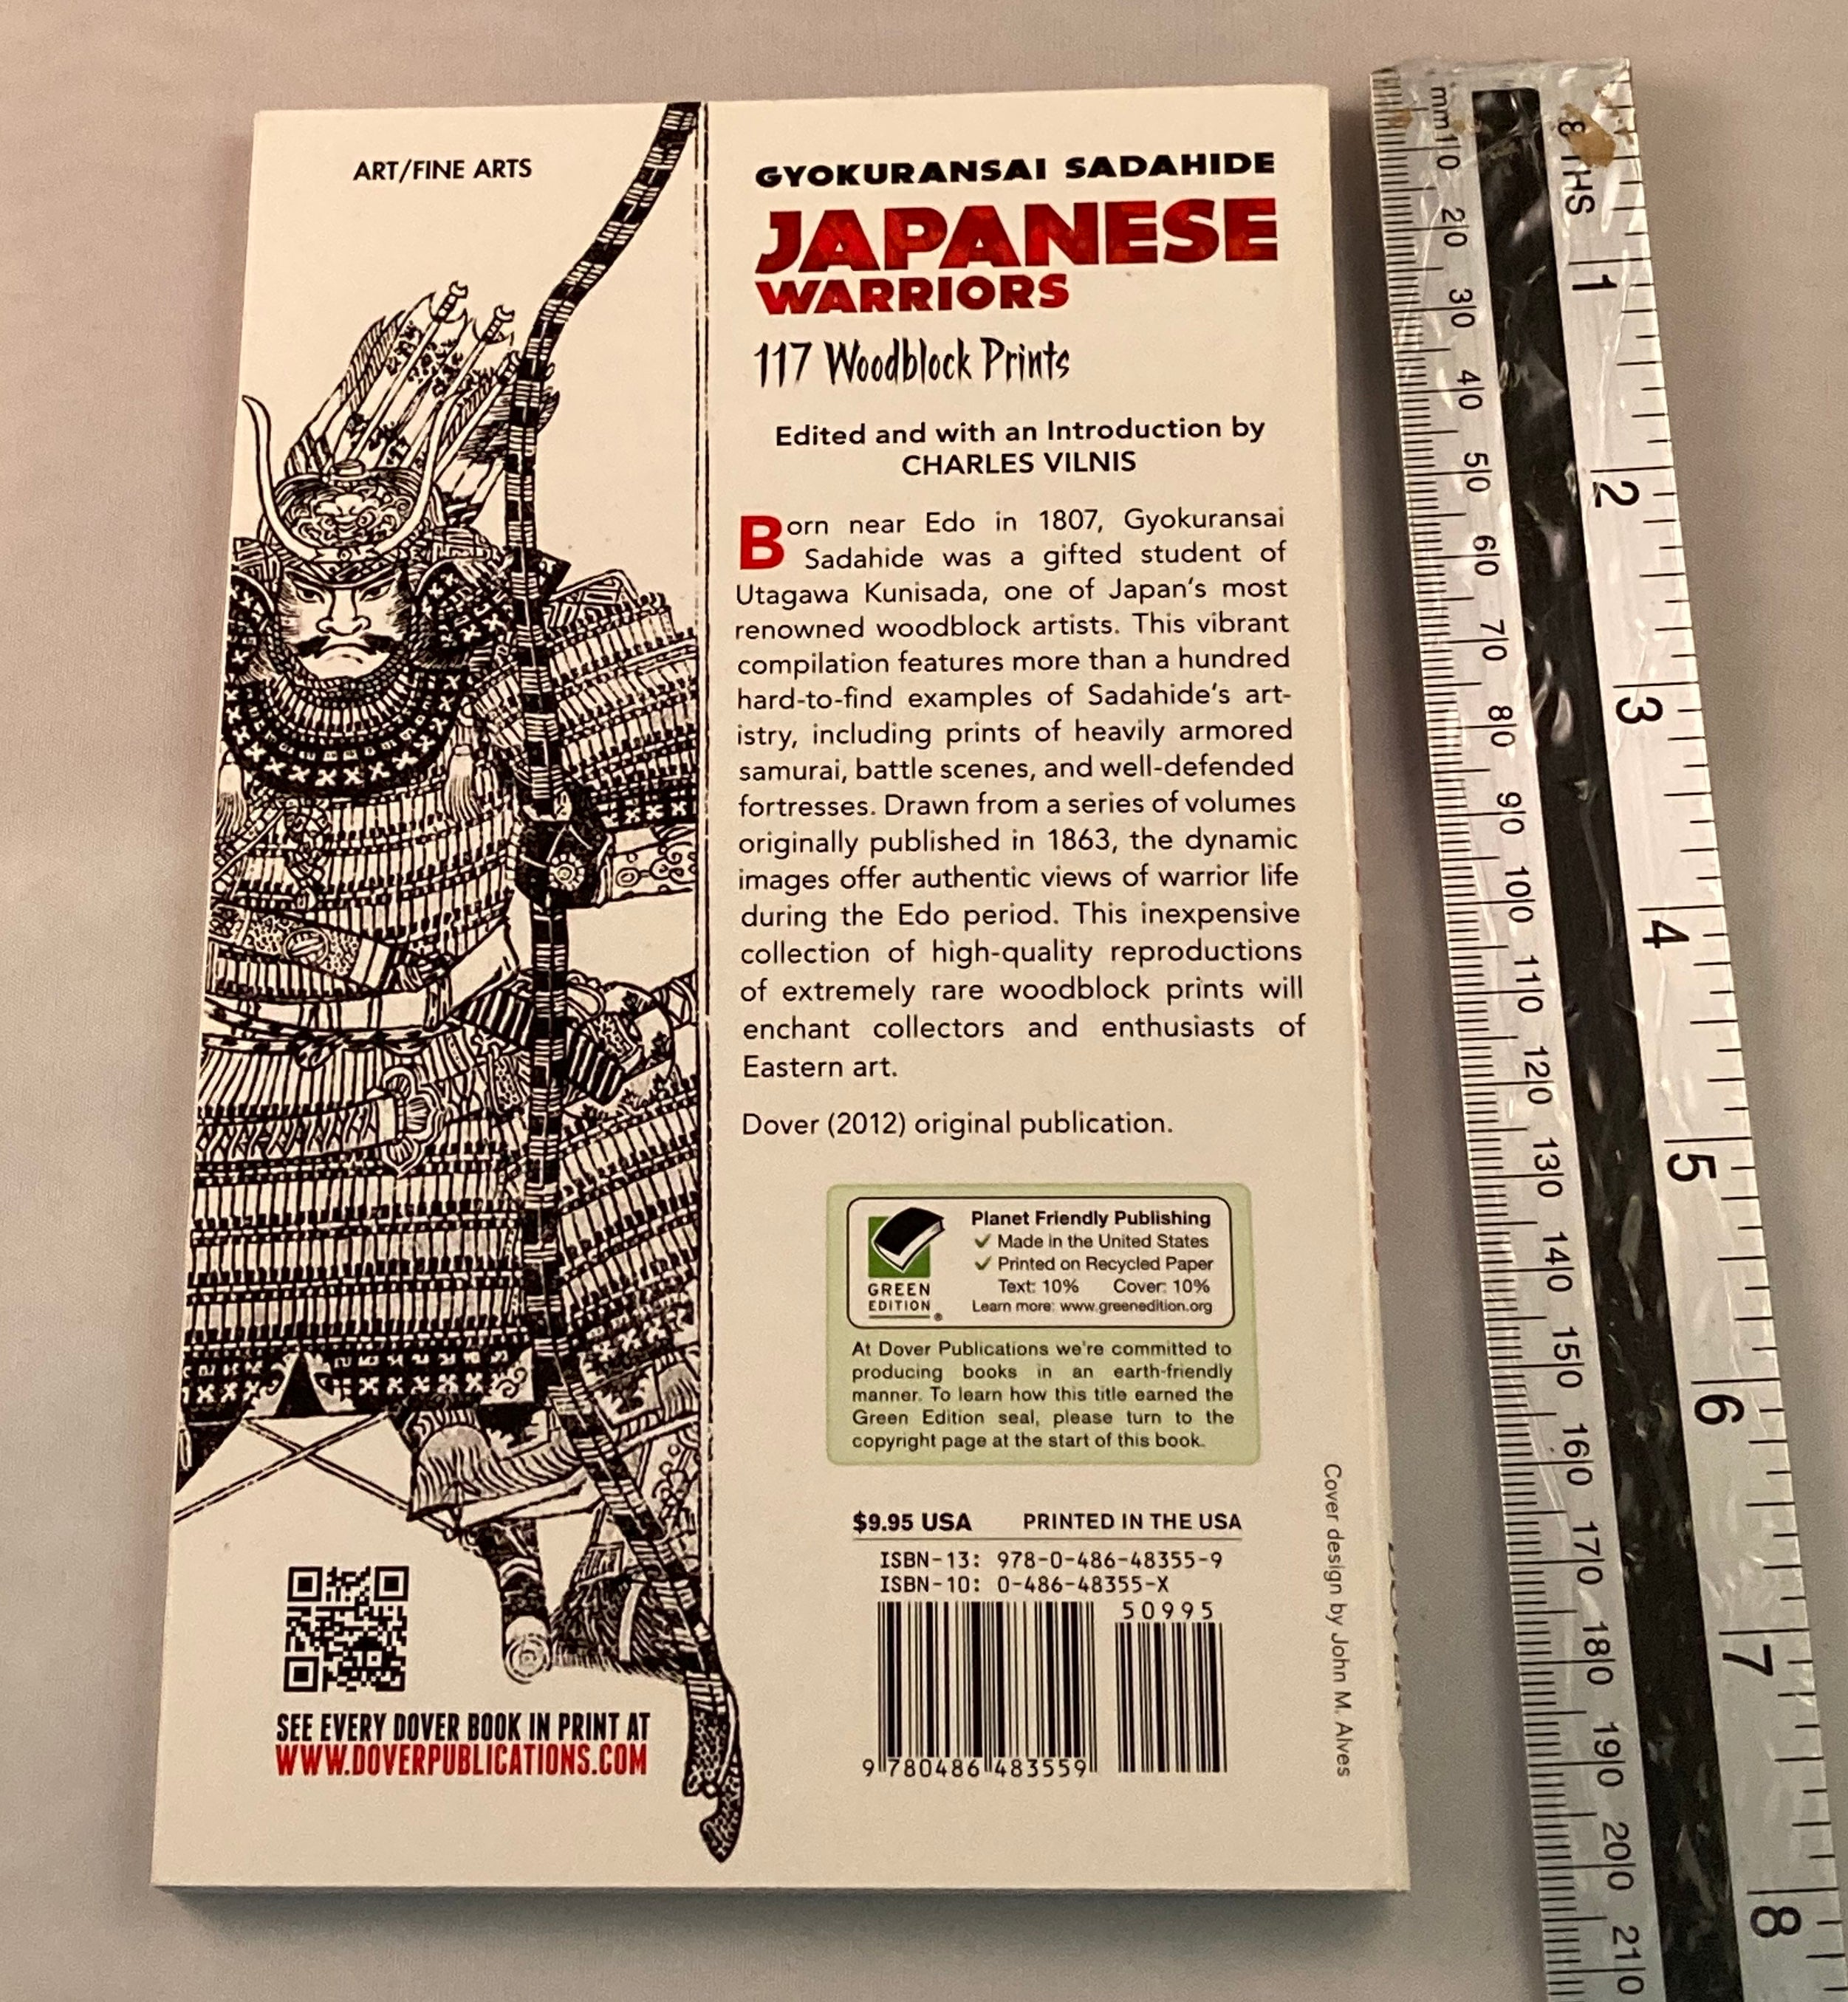 Japanese Warriors , 117 woodblock prints. Yokuransai Sadahide - Yamazakura